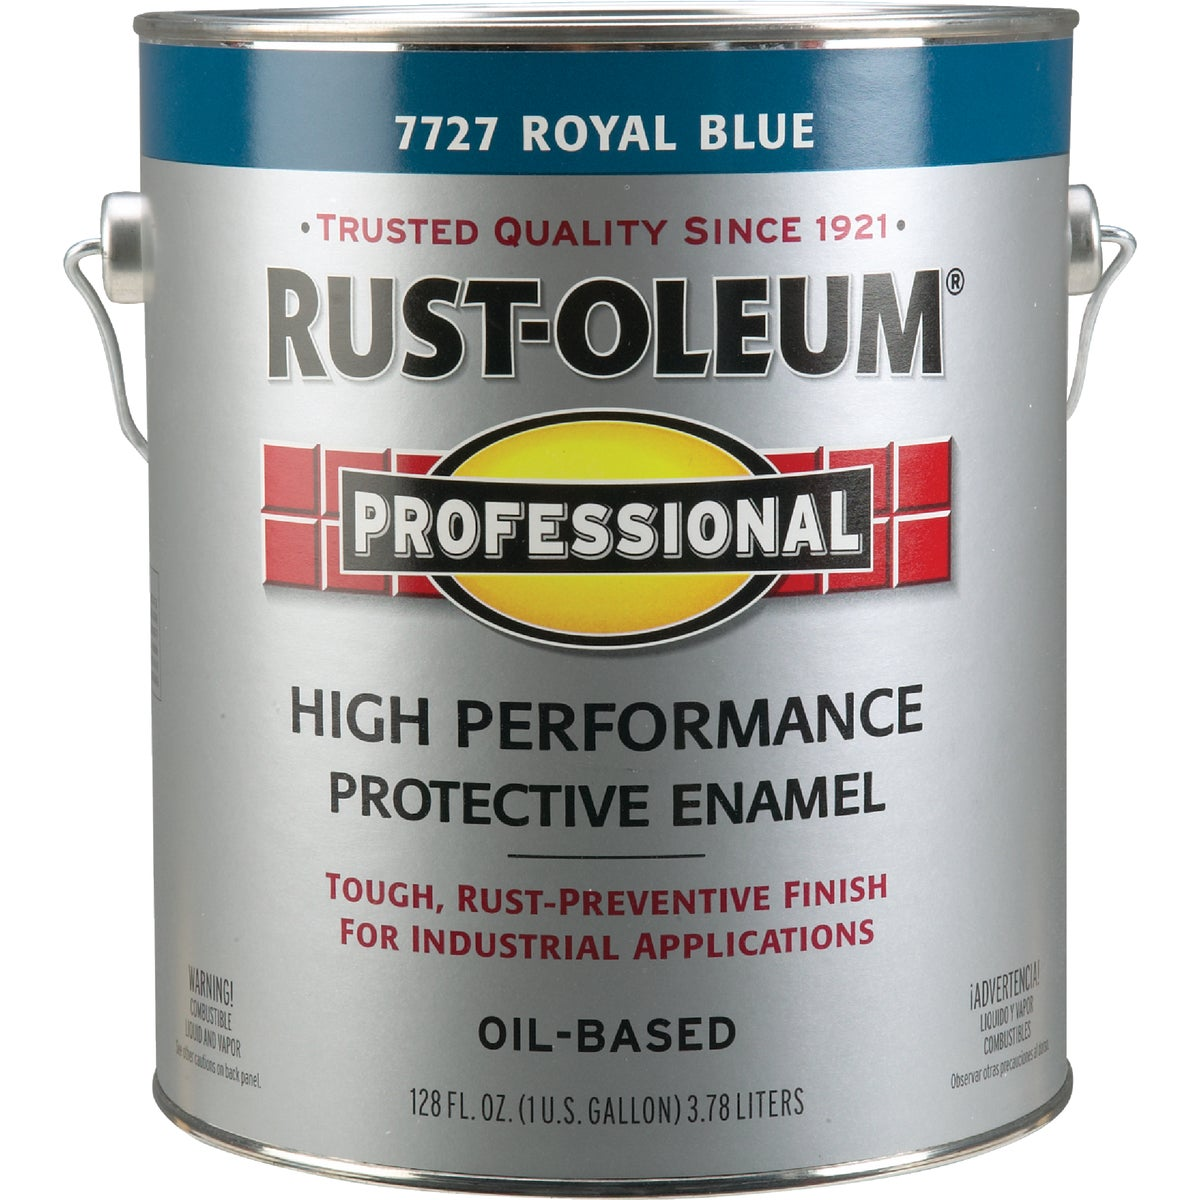 ROYAL BLUE ENAMEL - 7727-402 by Rustoleum